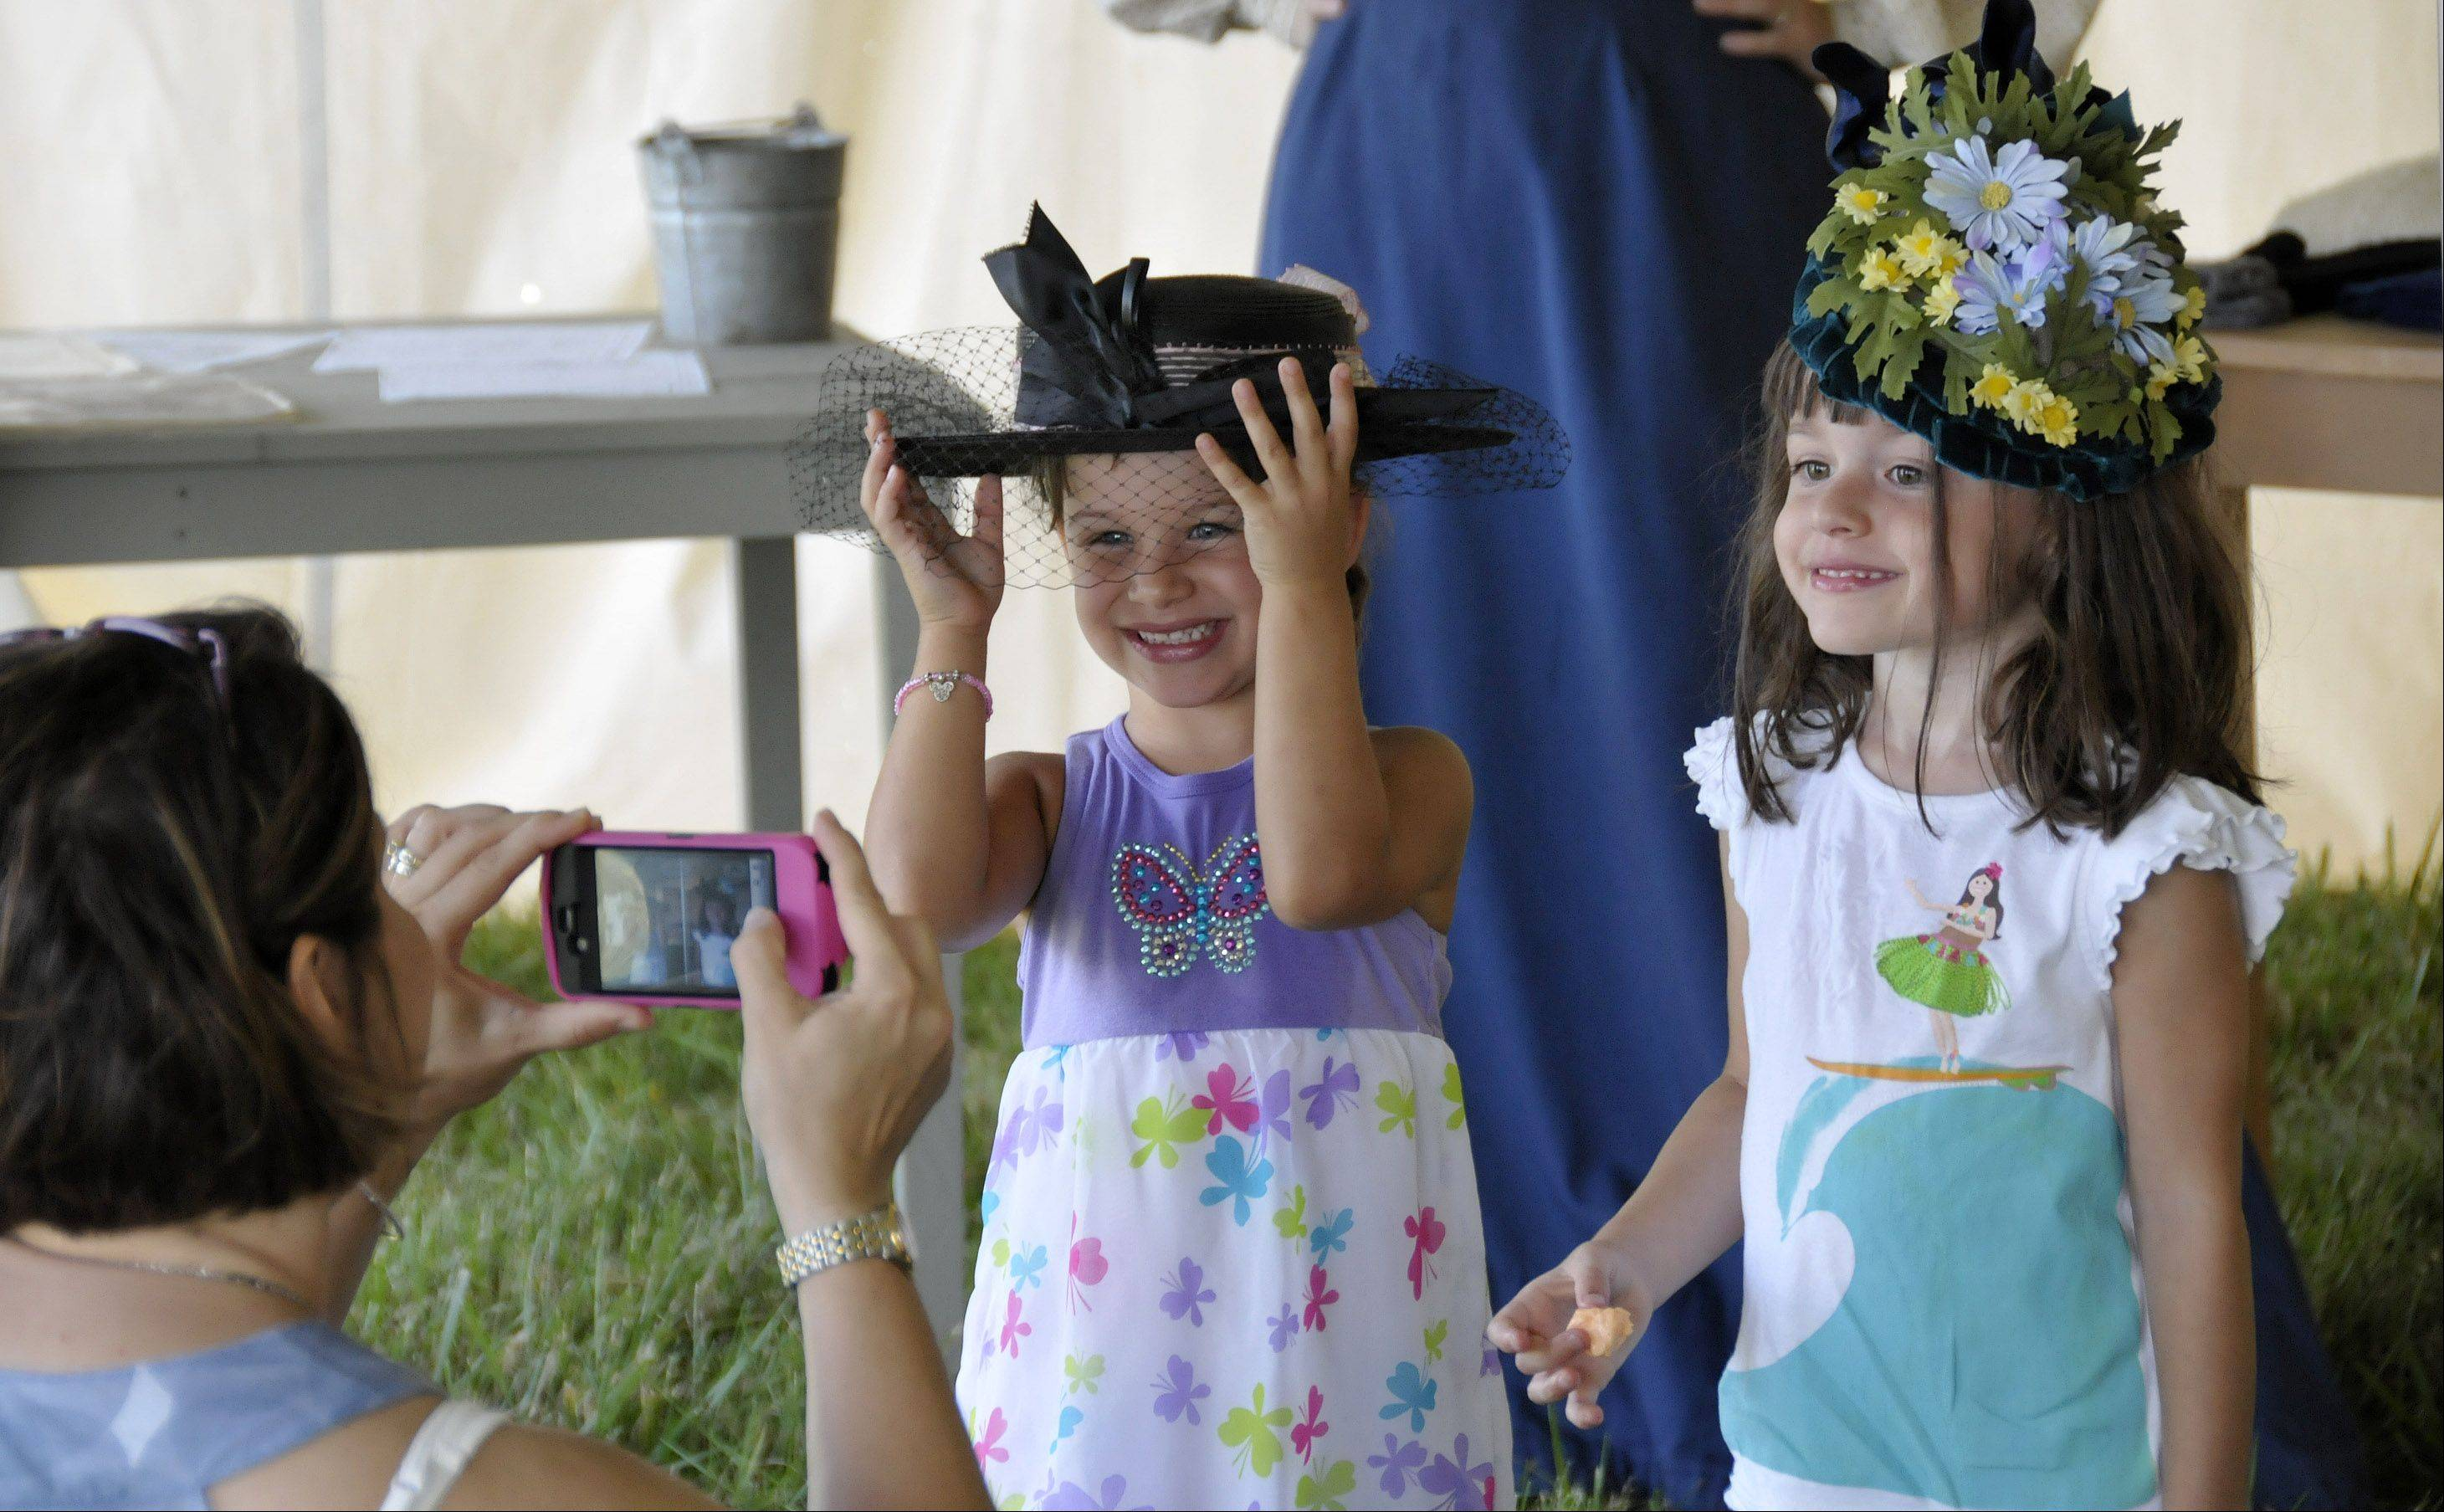 Eniko Camberis, center, and her sister, Makena, right, try on old-fashioned hats while their mother Susan Camberis, left, takes their picture Sunday during the DuPage County Forest Preserve District's old-fashioned country fair at Kline Creek Farm in West Chicago. The event gave people the experience of what an 1890s fair would have been like.